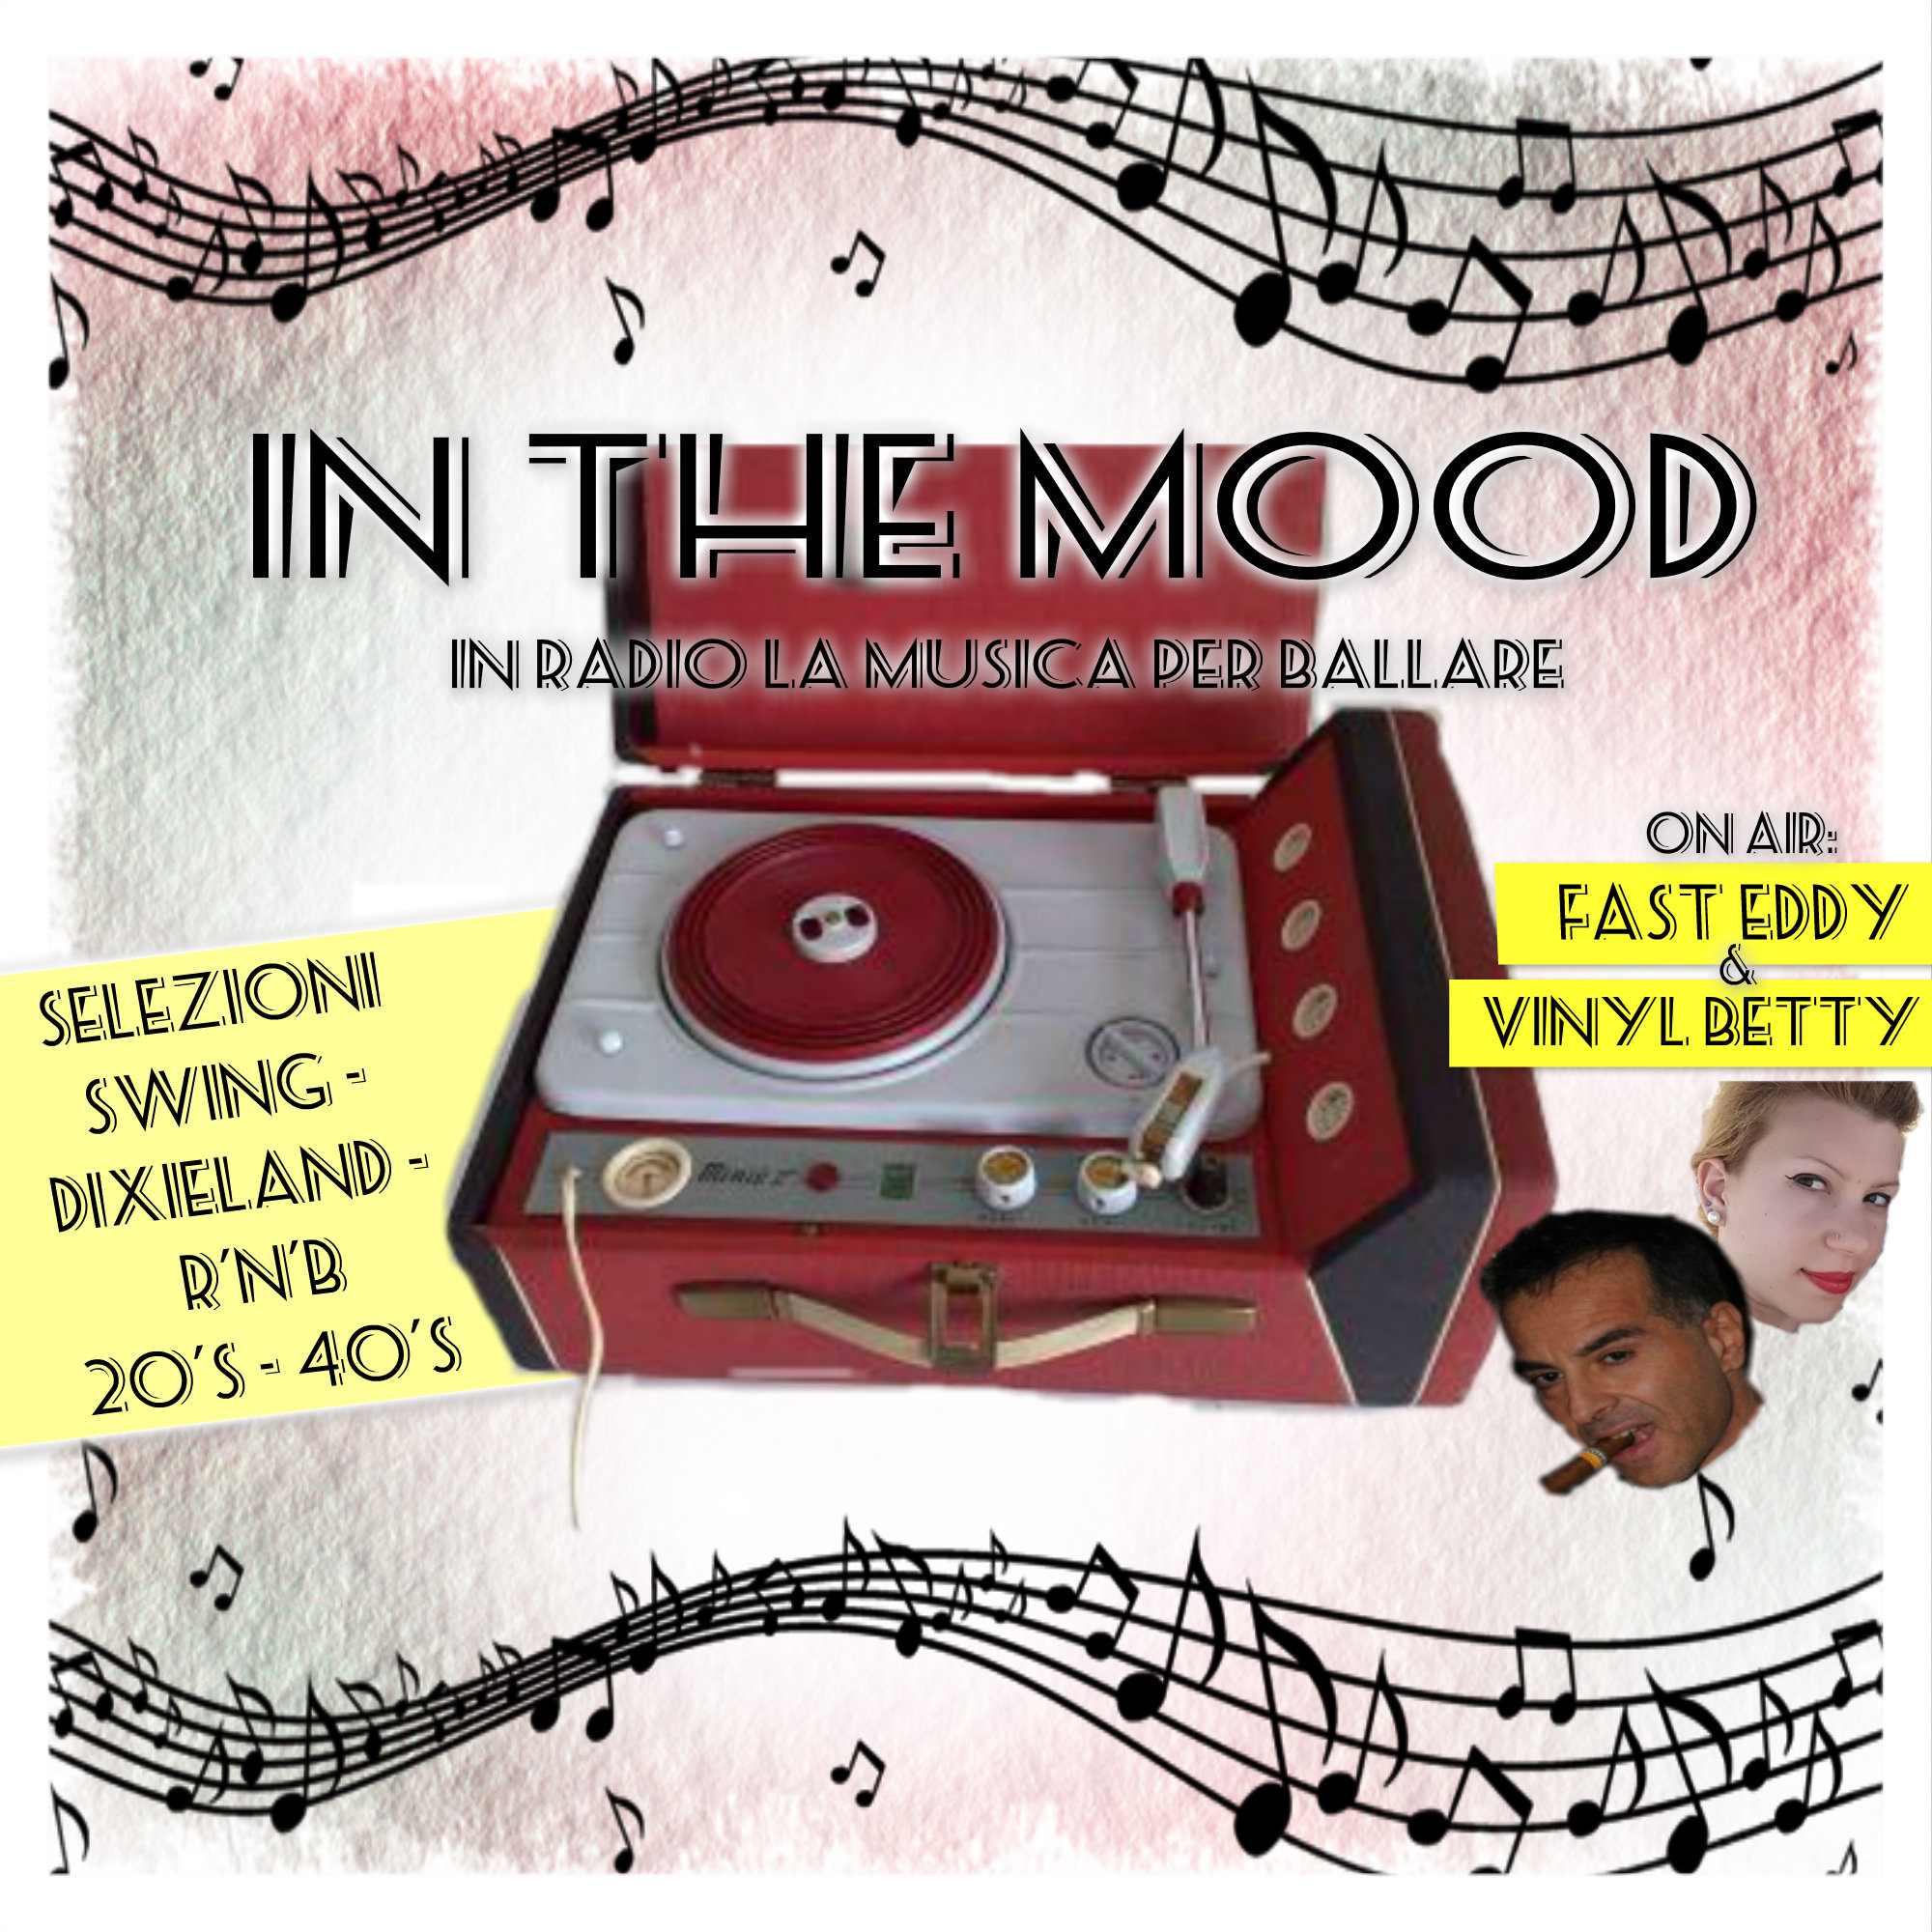 In The Mood – in radio la musica per ballare